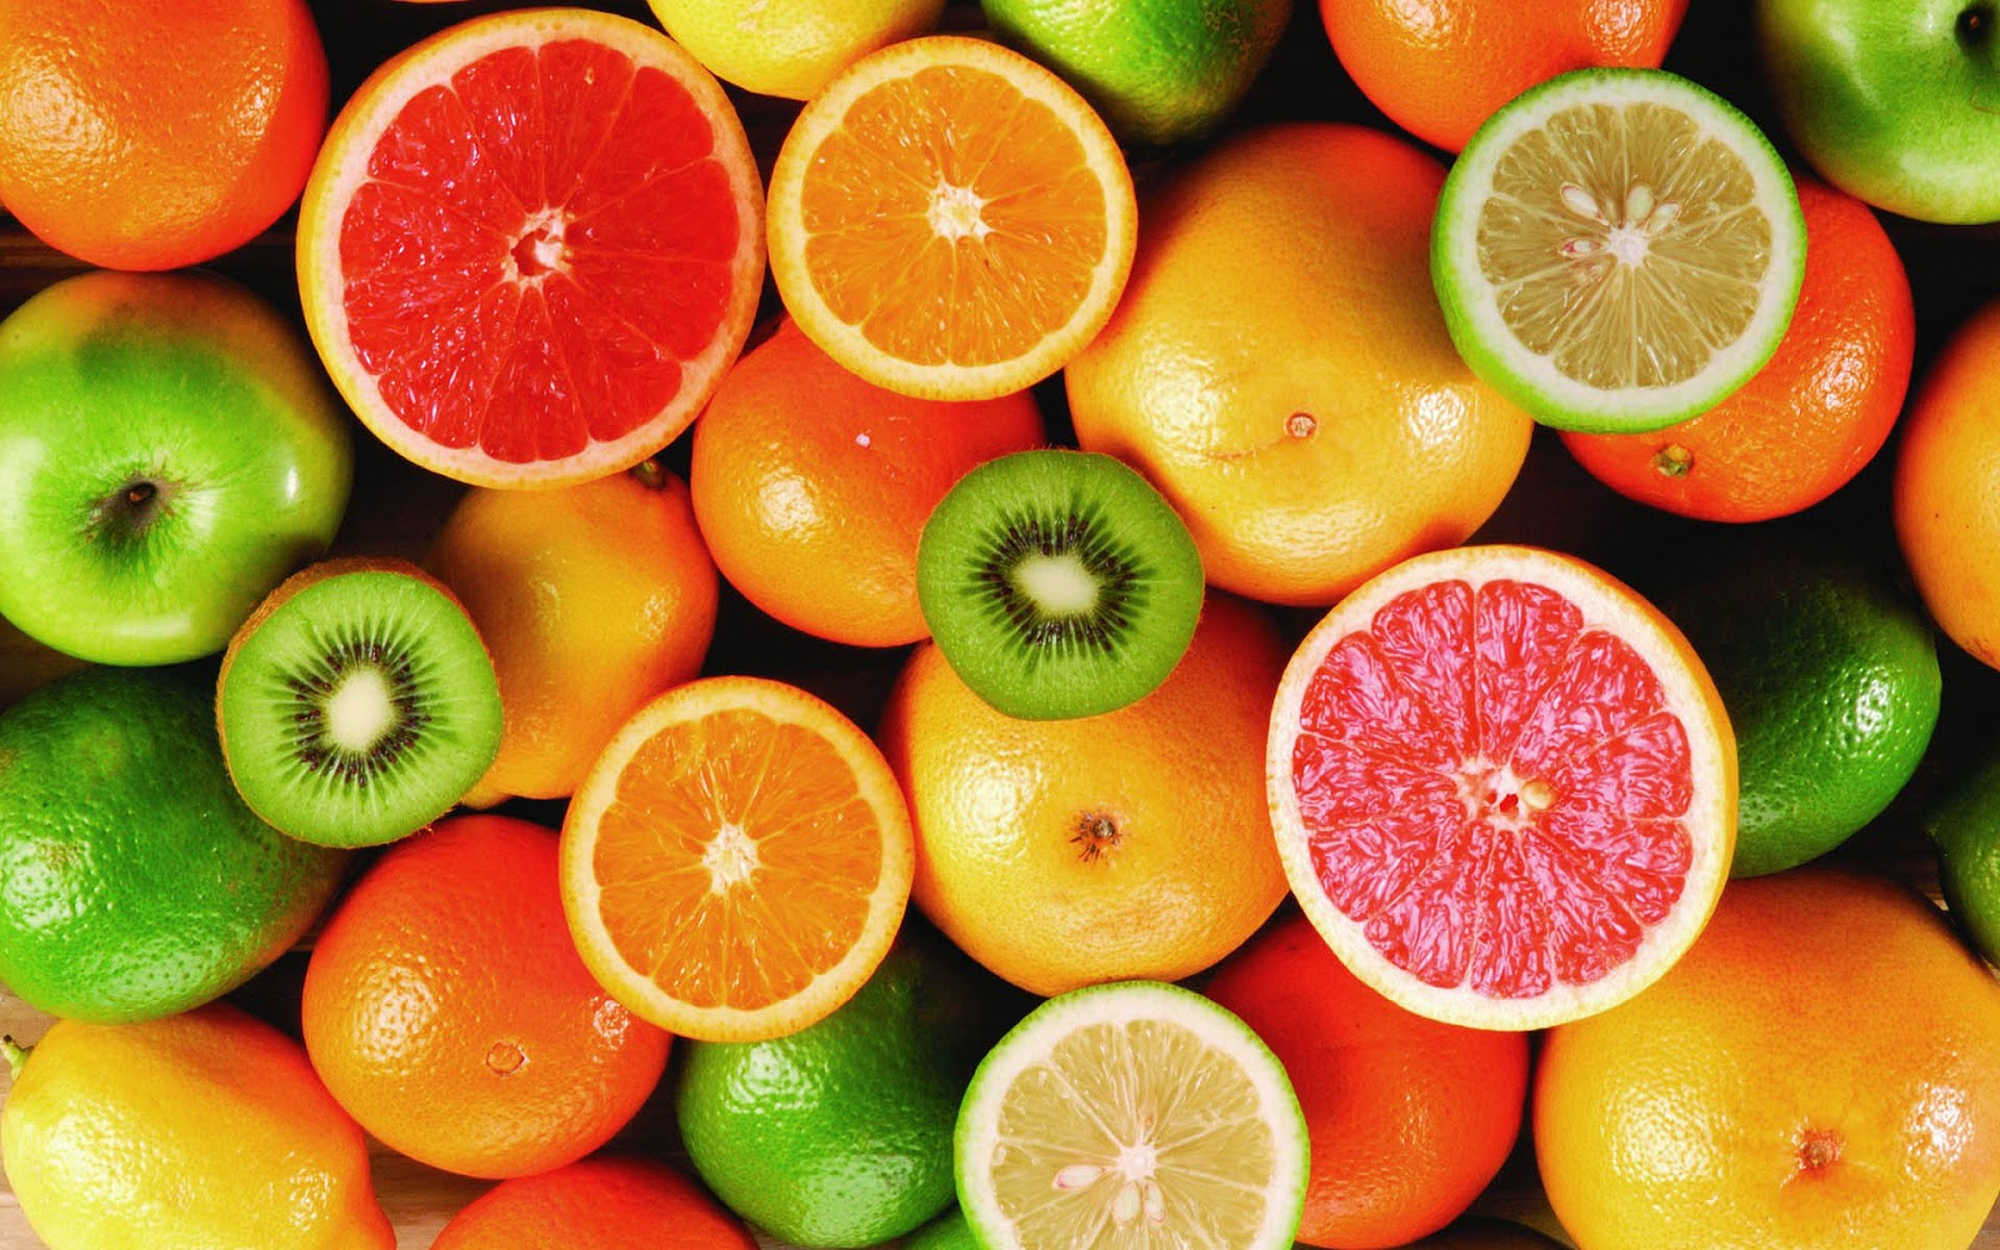 vitamin c - foods, supplements, deficiency, benefits, side effects